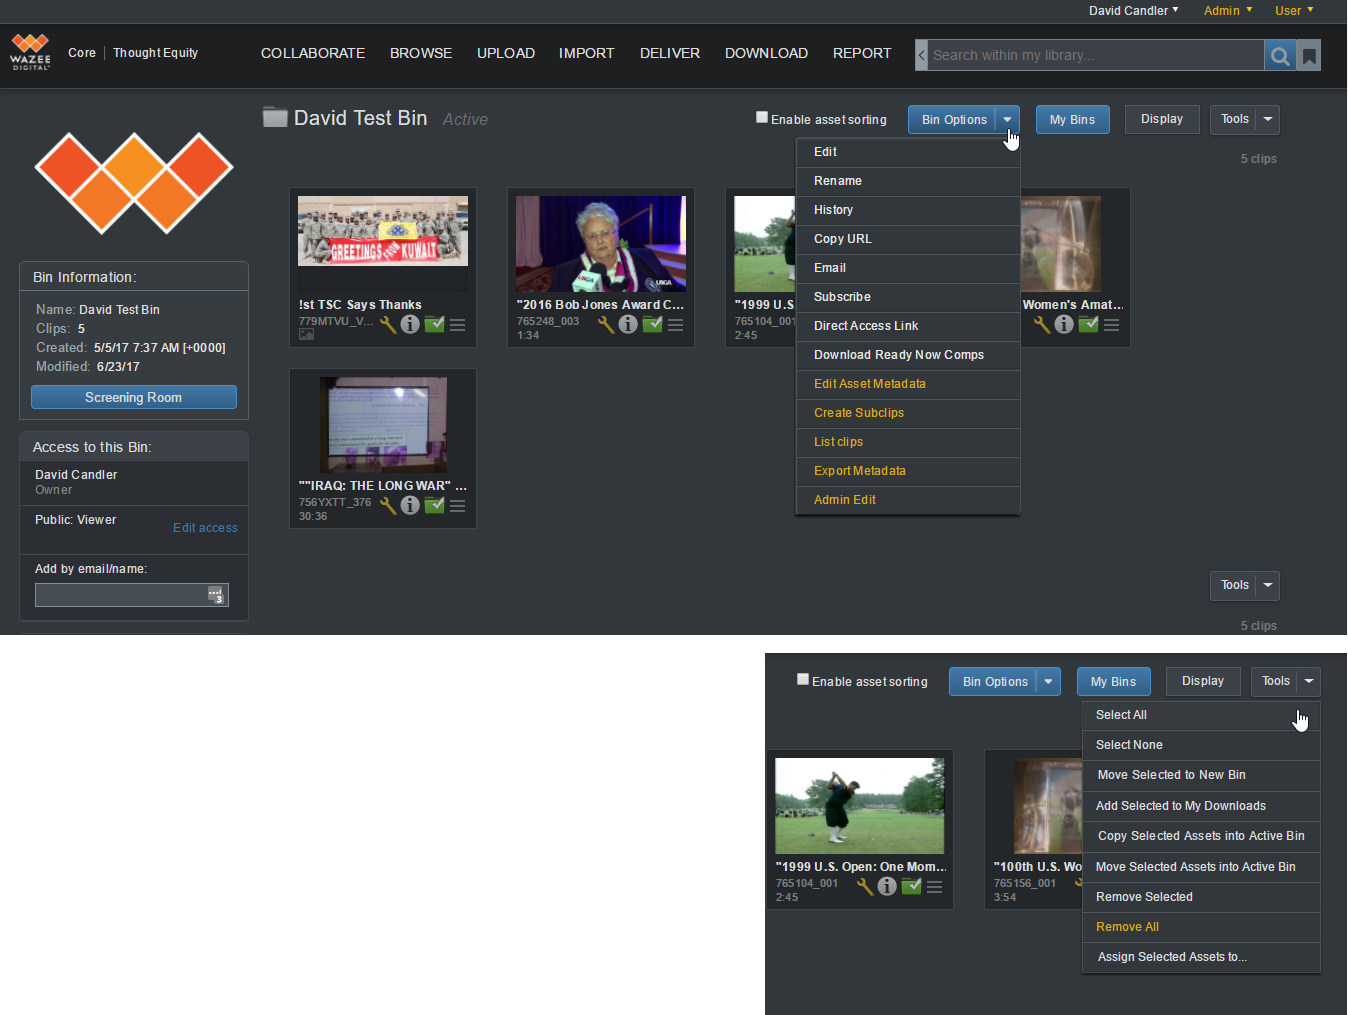 Discover Further Options